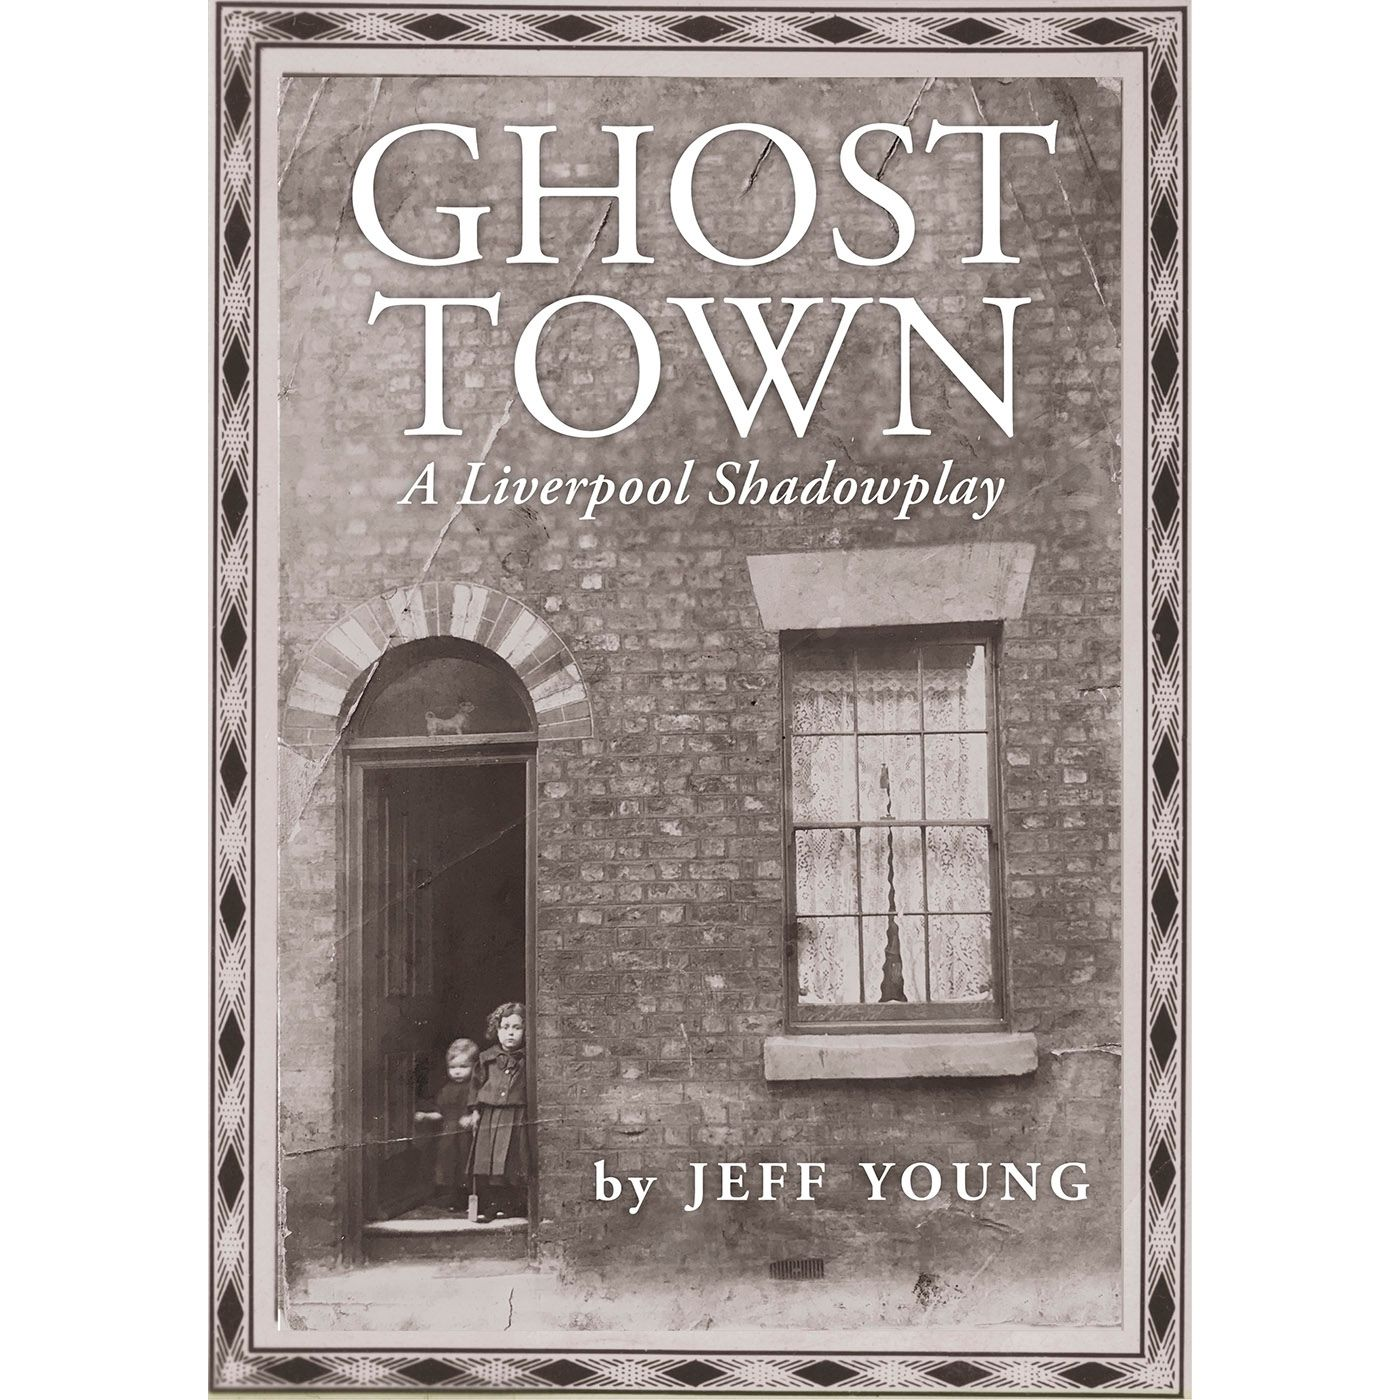 Ghost Town: A Liverpool Shadowplay by Jeff Young